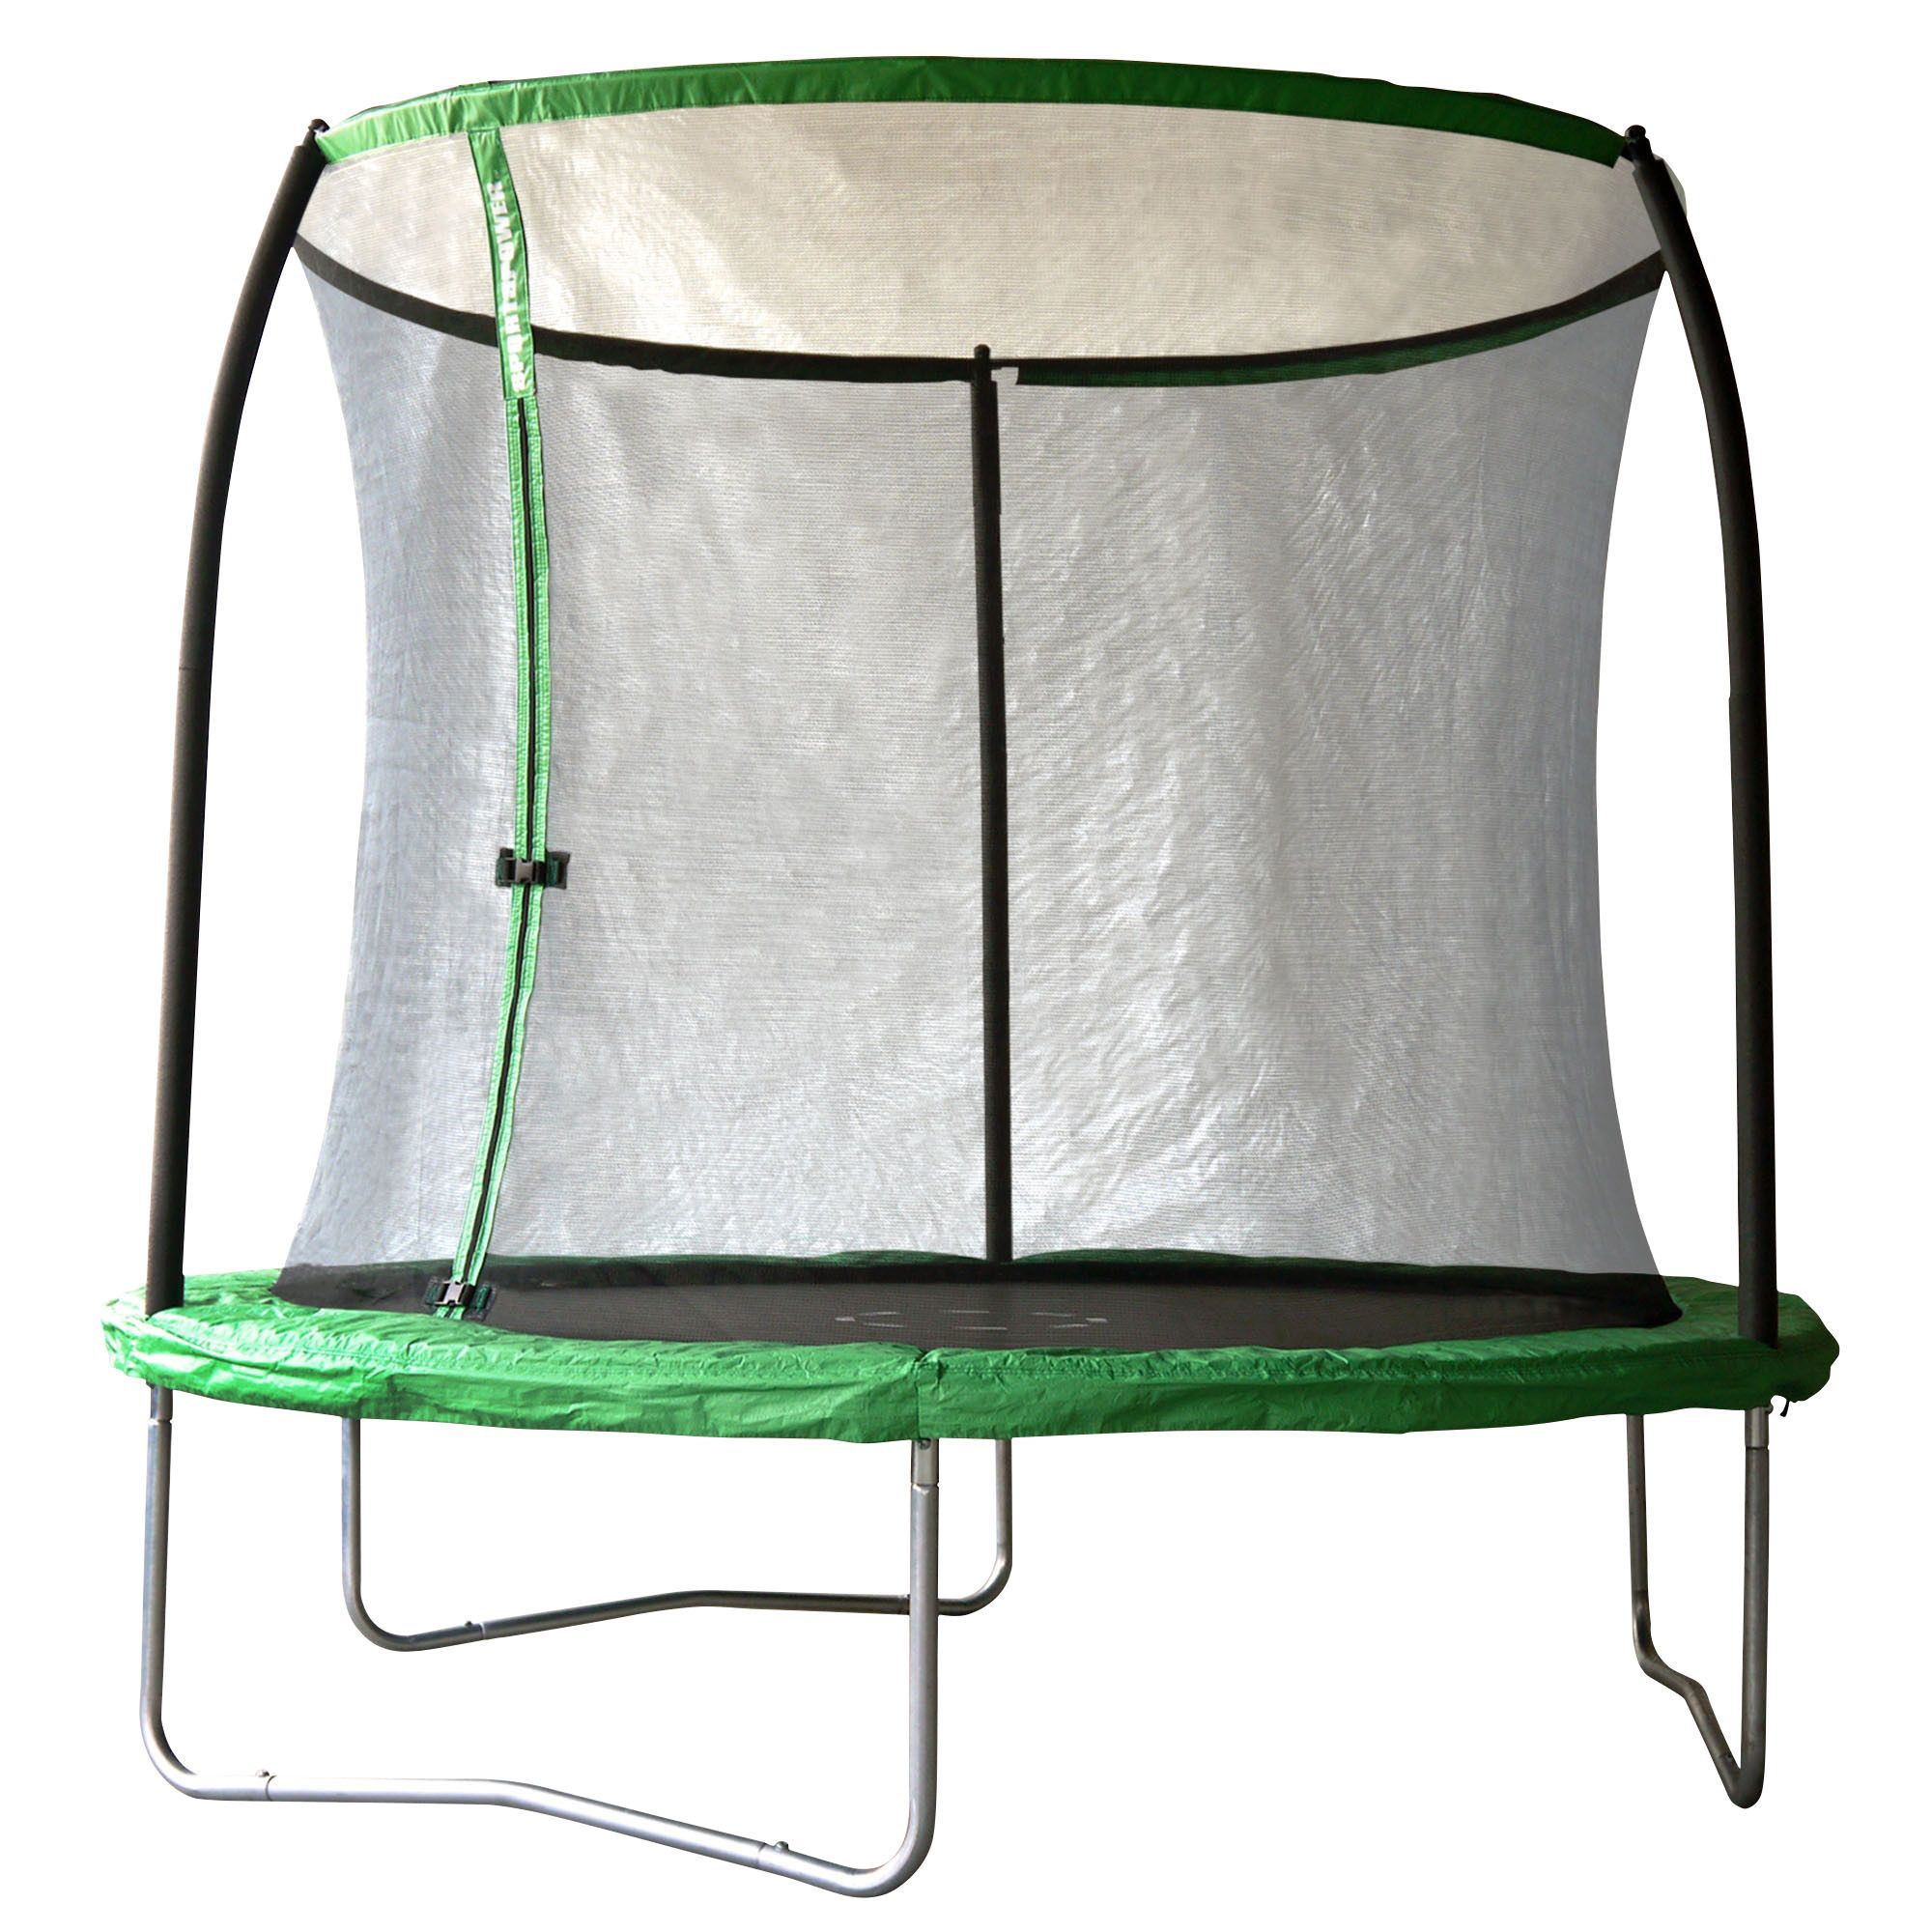 Trampoline Springs B Q: Black & Green 8 Ft Trampoline With Enclosure